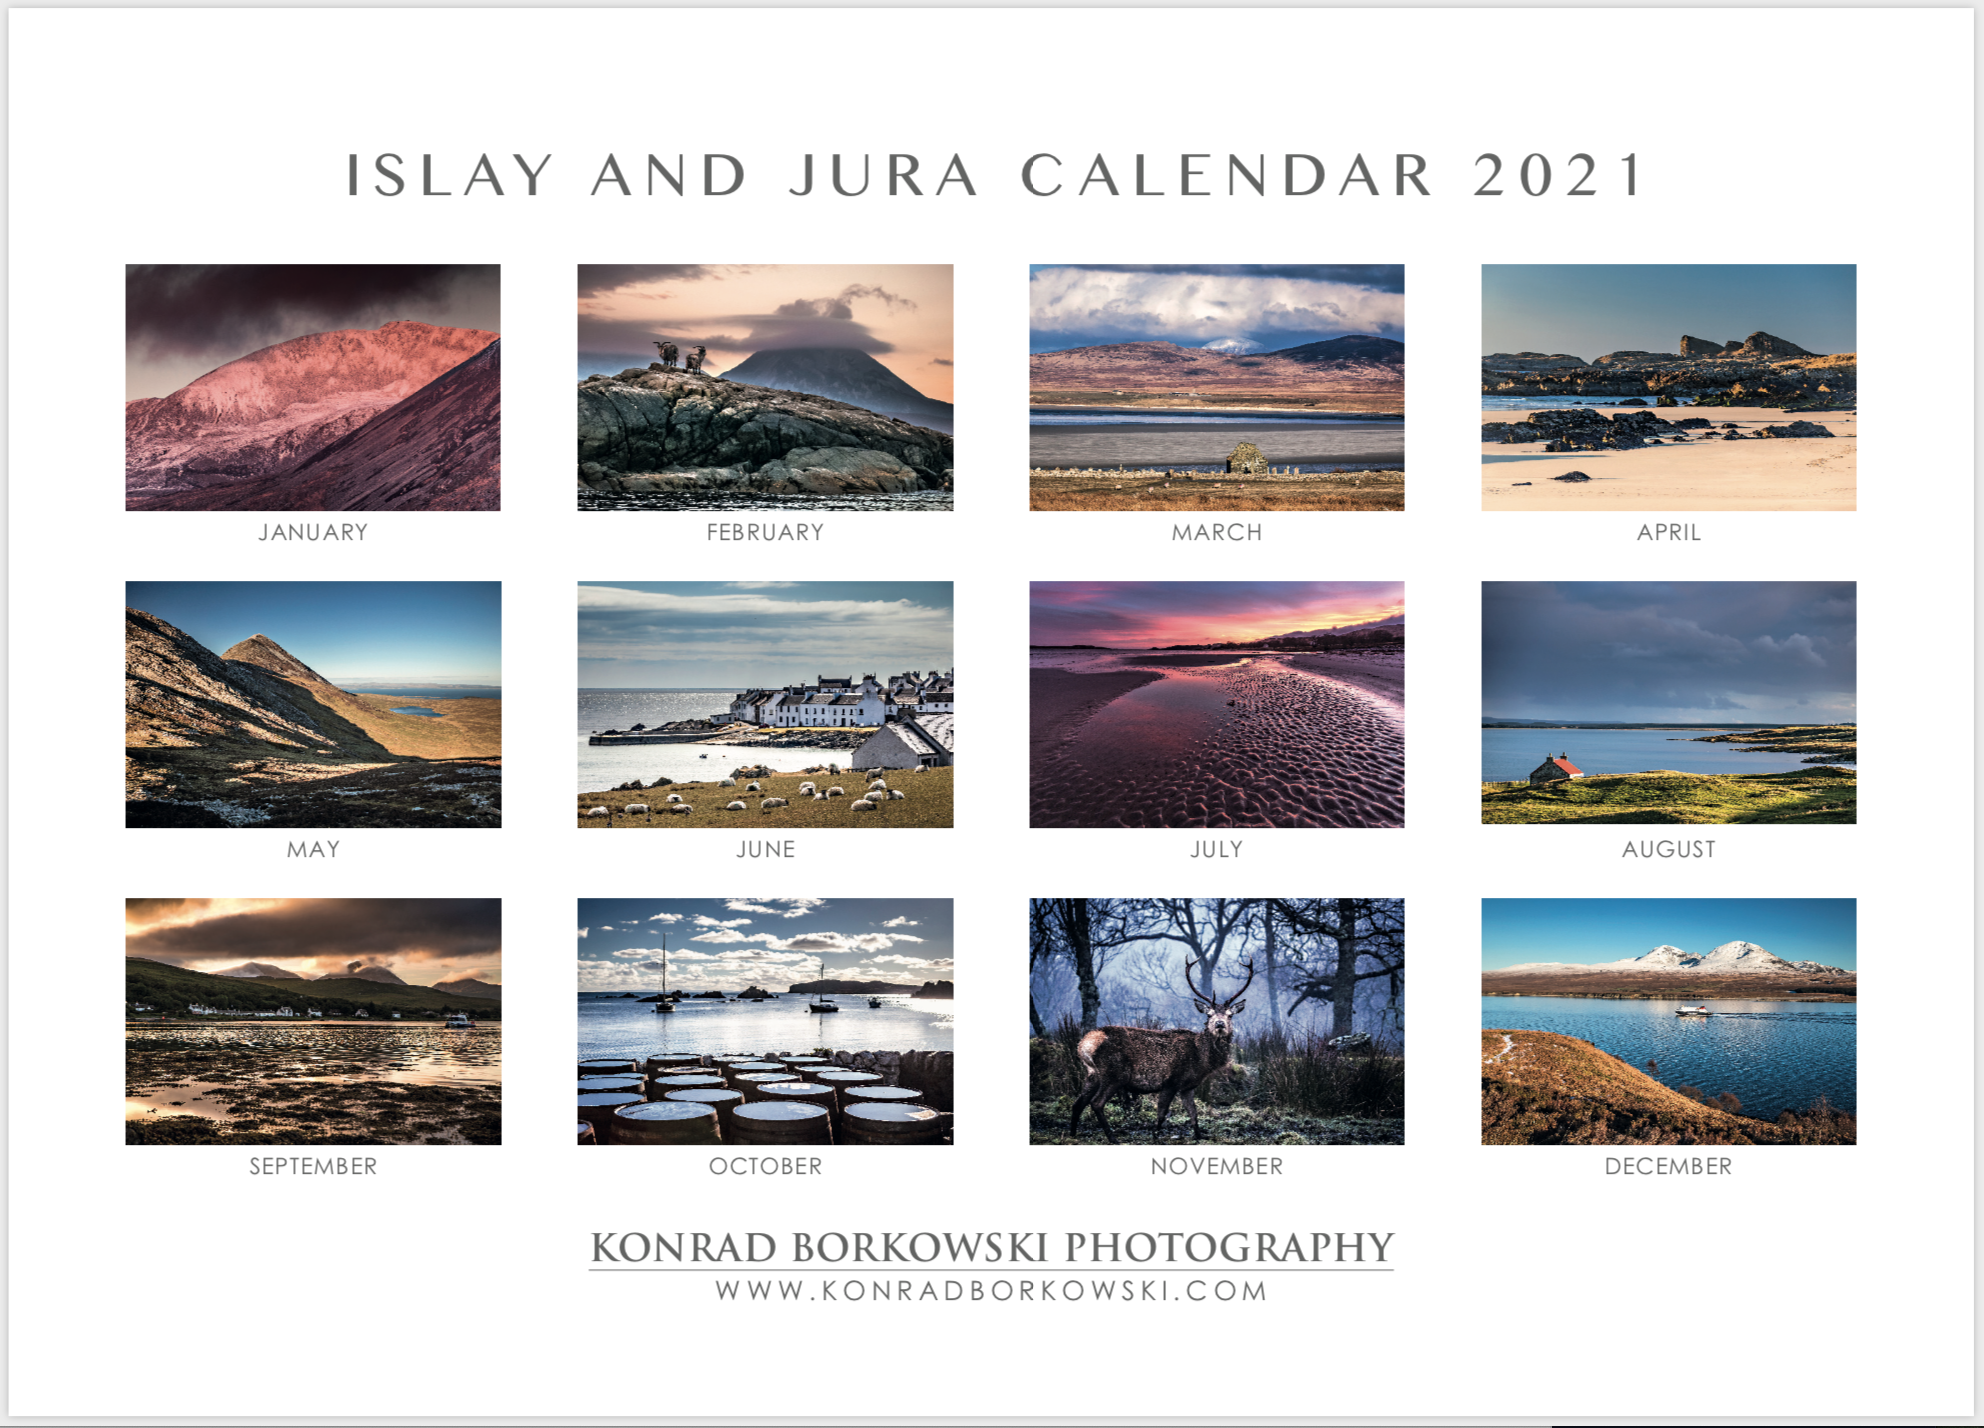 LIMITED EDITION ISLAY AND JURA 2021 CALENDAR AVAILABLE FOR